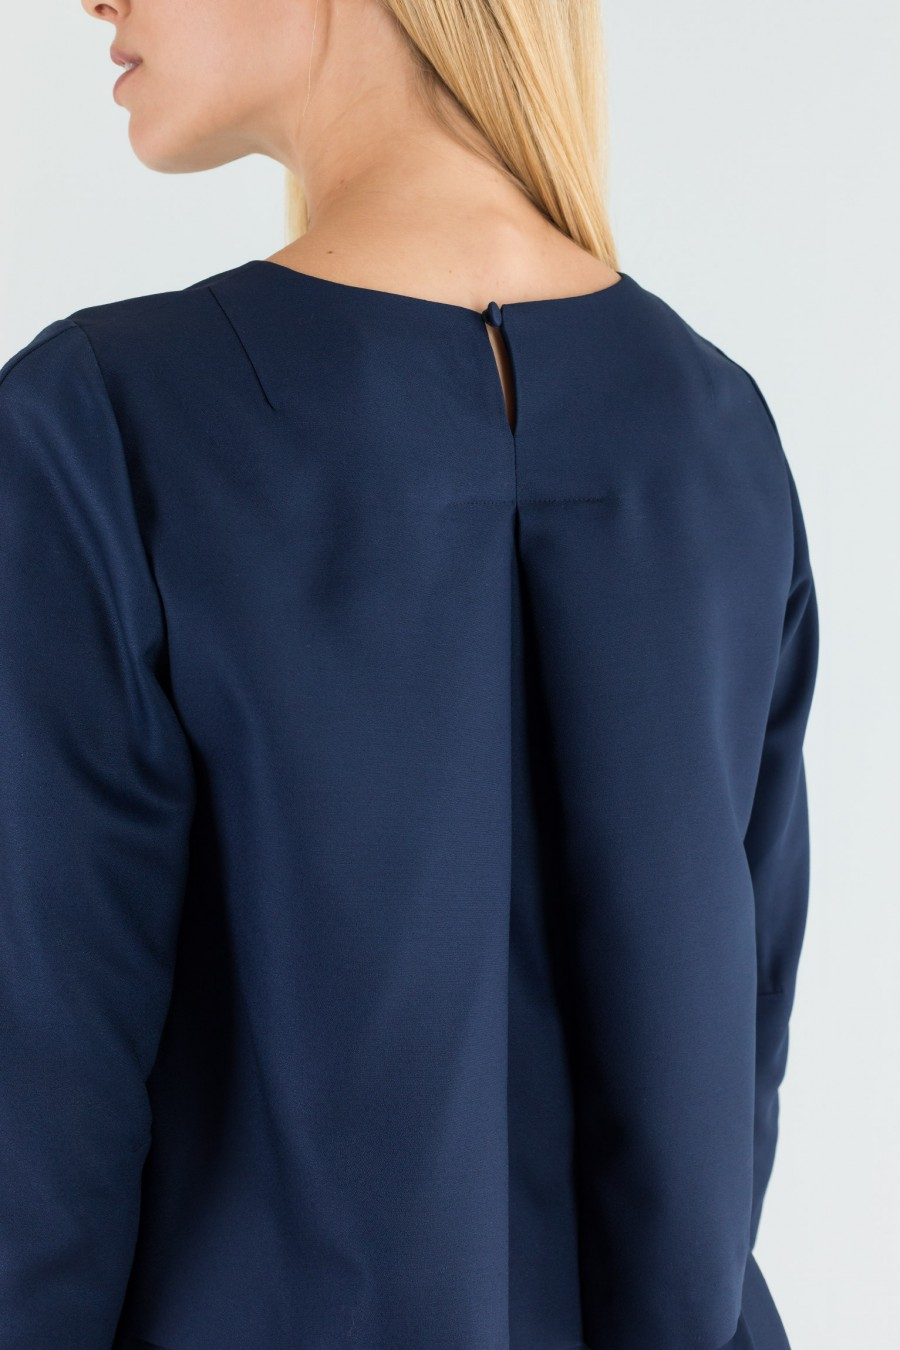 Navy blue outfit in thin wool